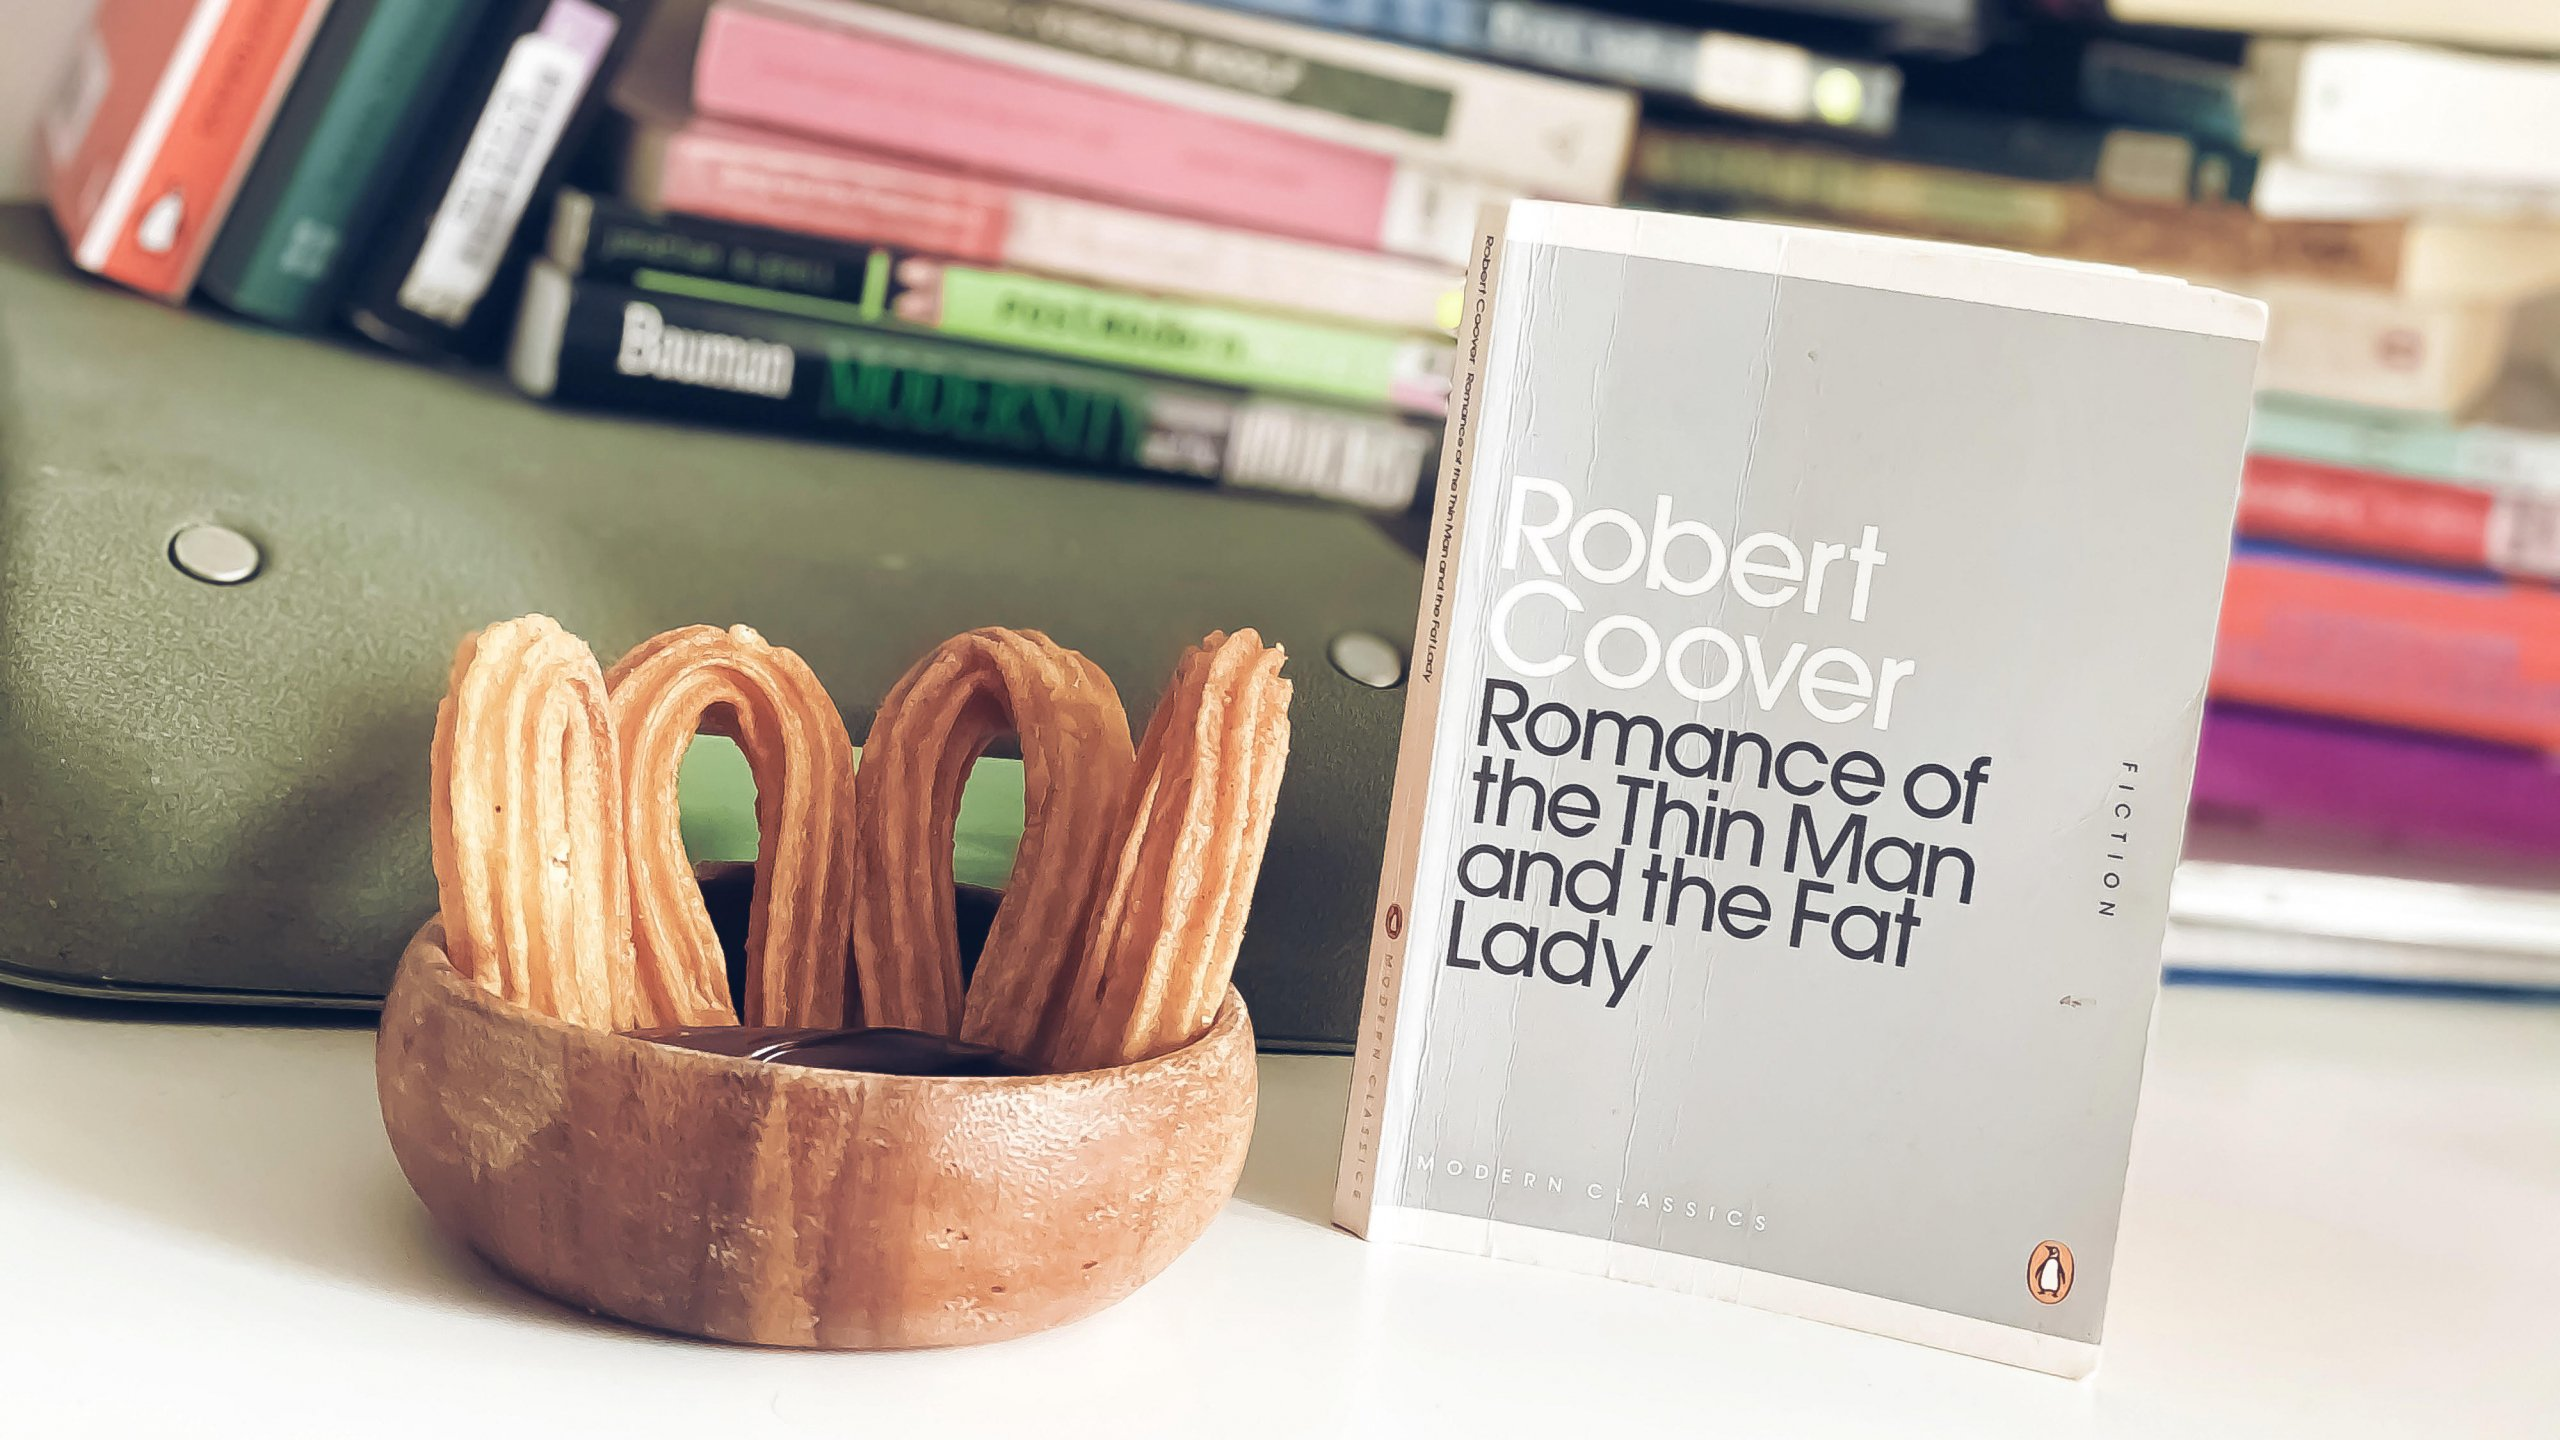 Dinner with a Book: Romance of the Thin Man and the Fat Lady